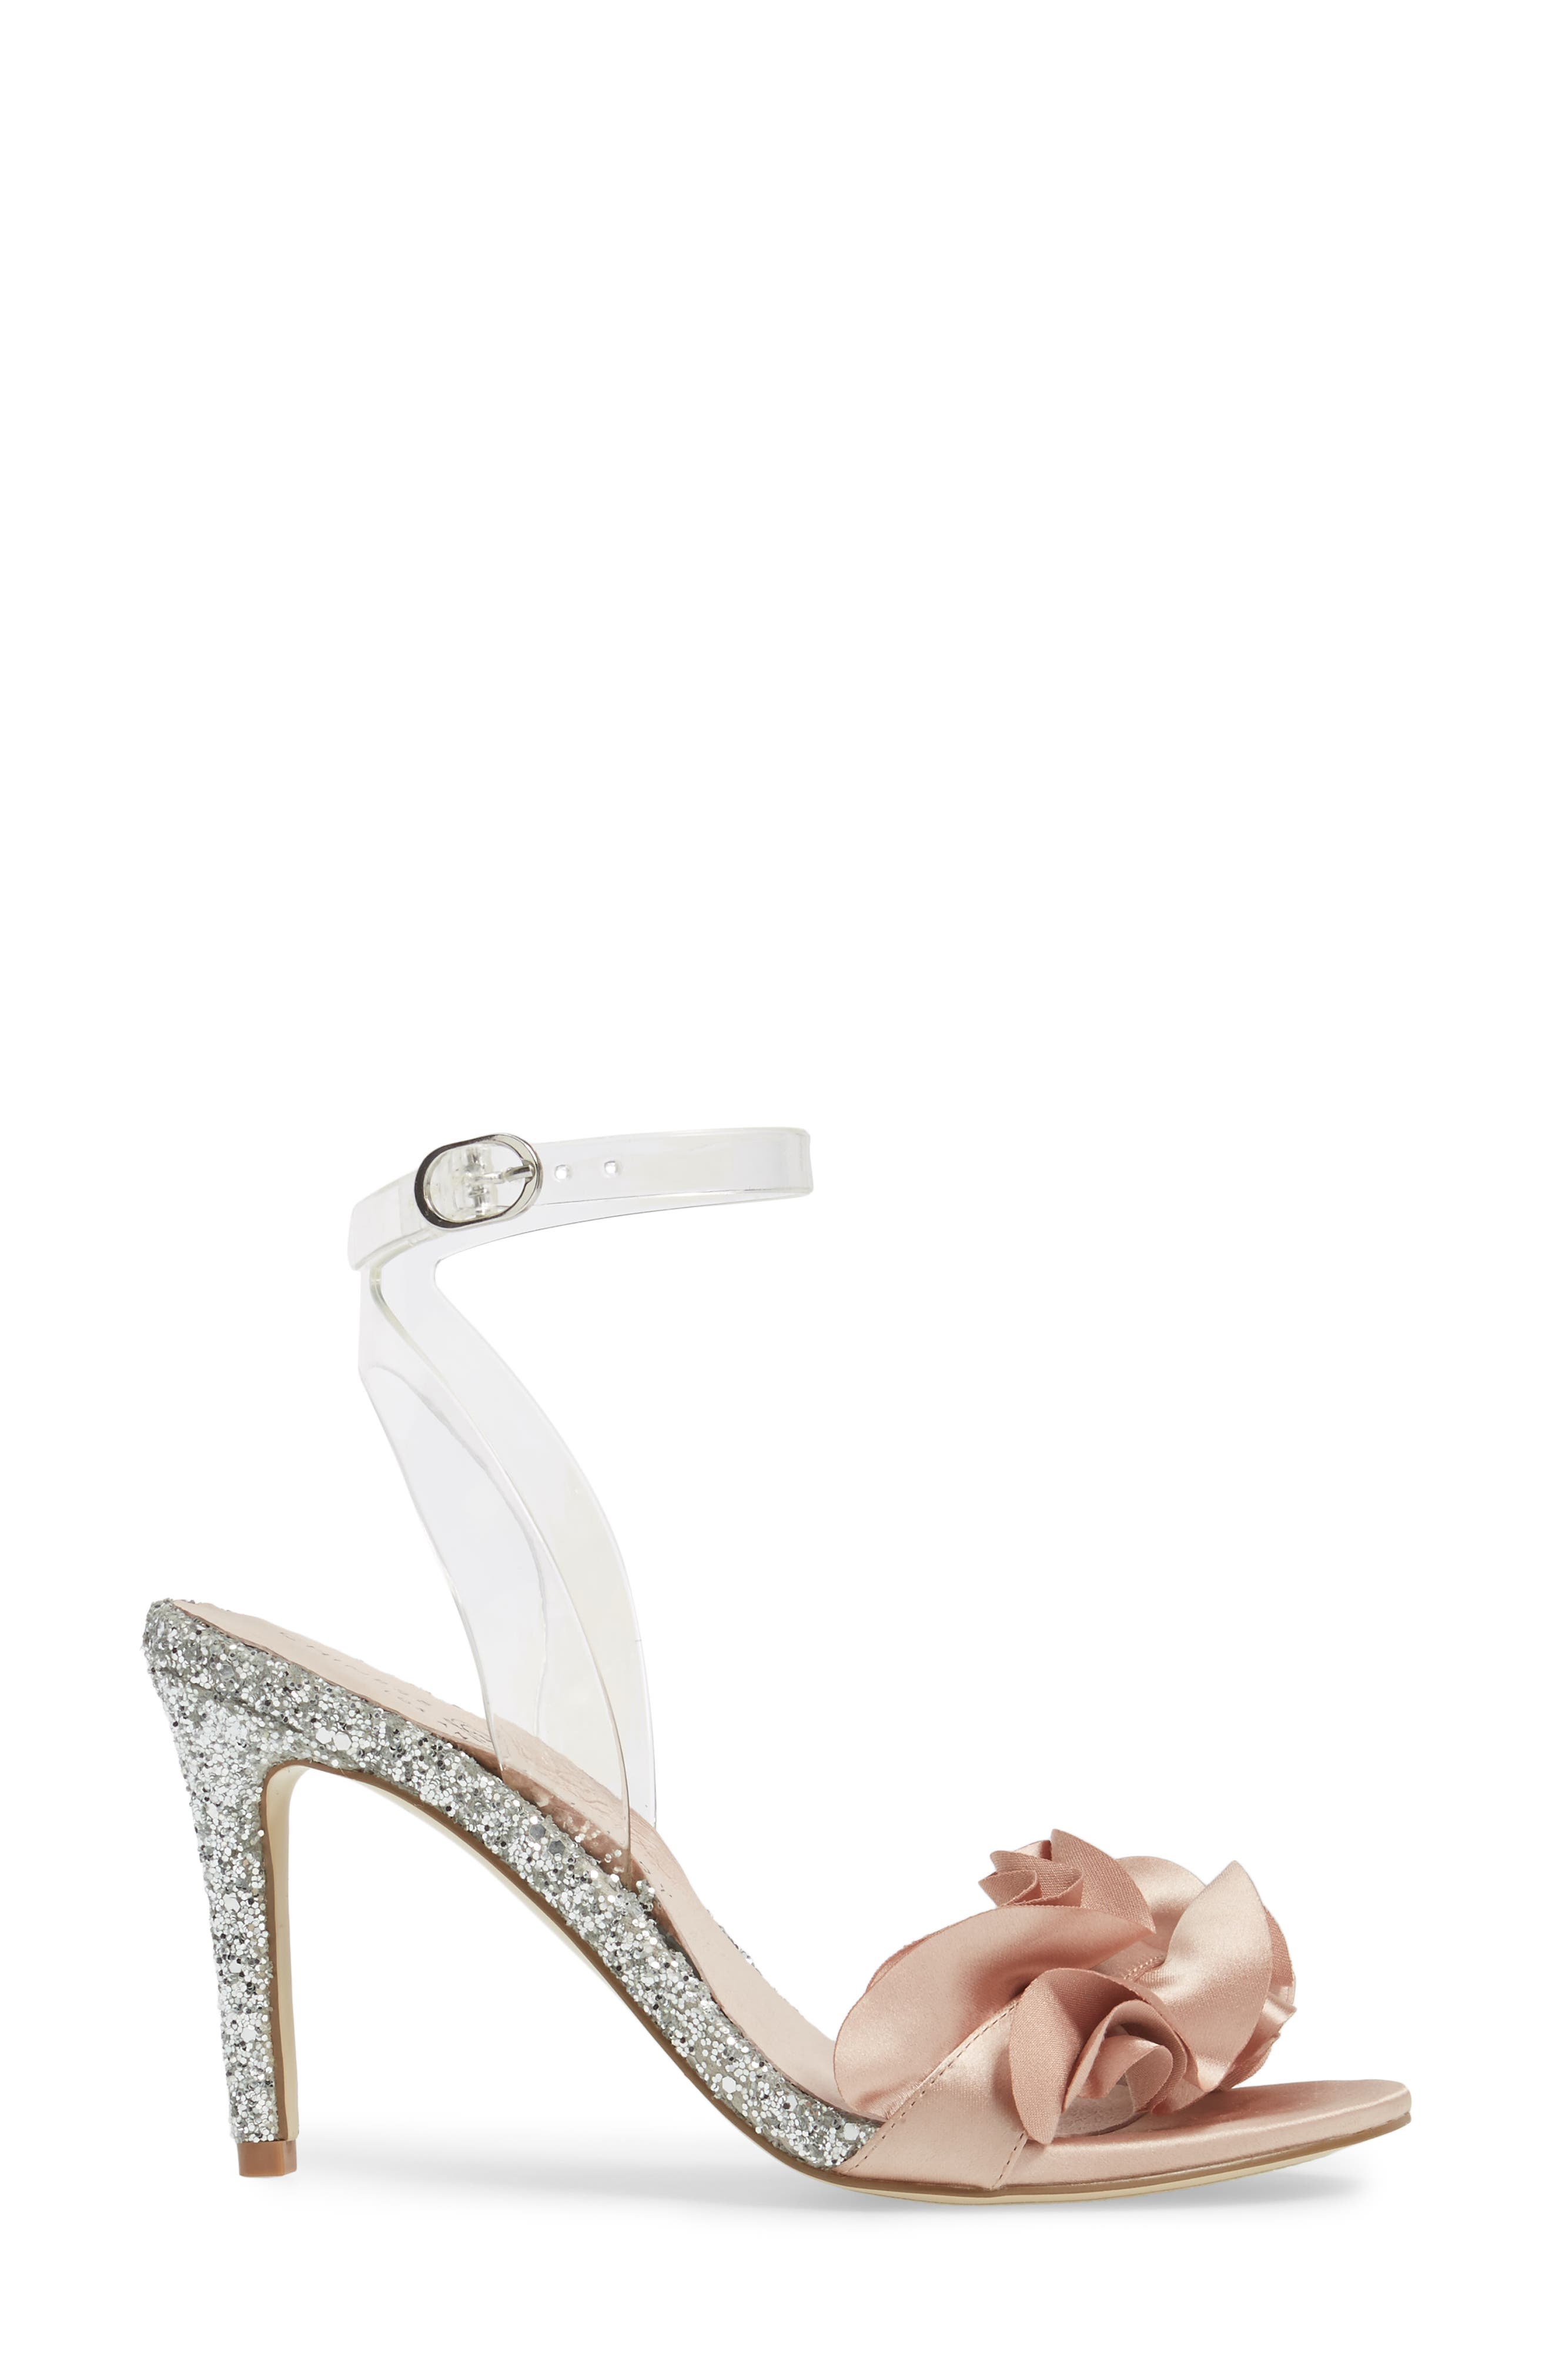 Janey Ruffled Sandal,                             Alternate thumbnail 3, color,                             Nude/ Clear